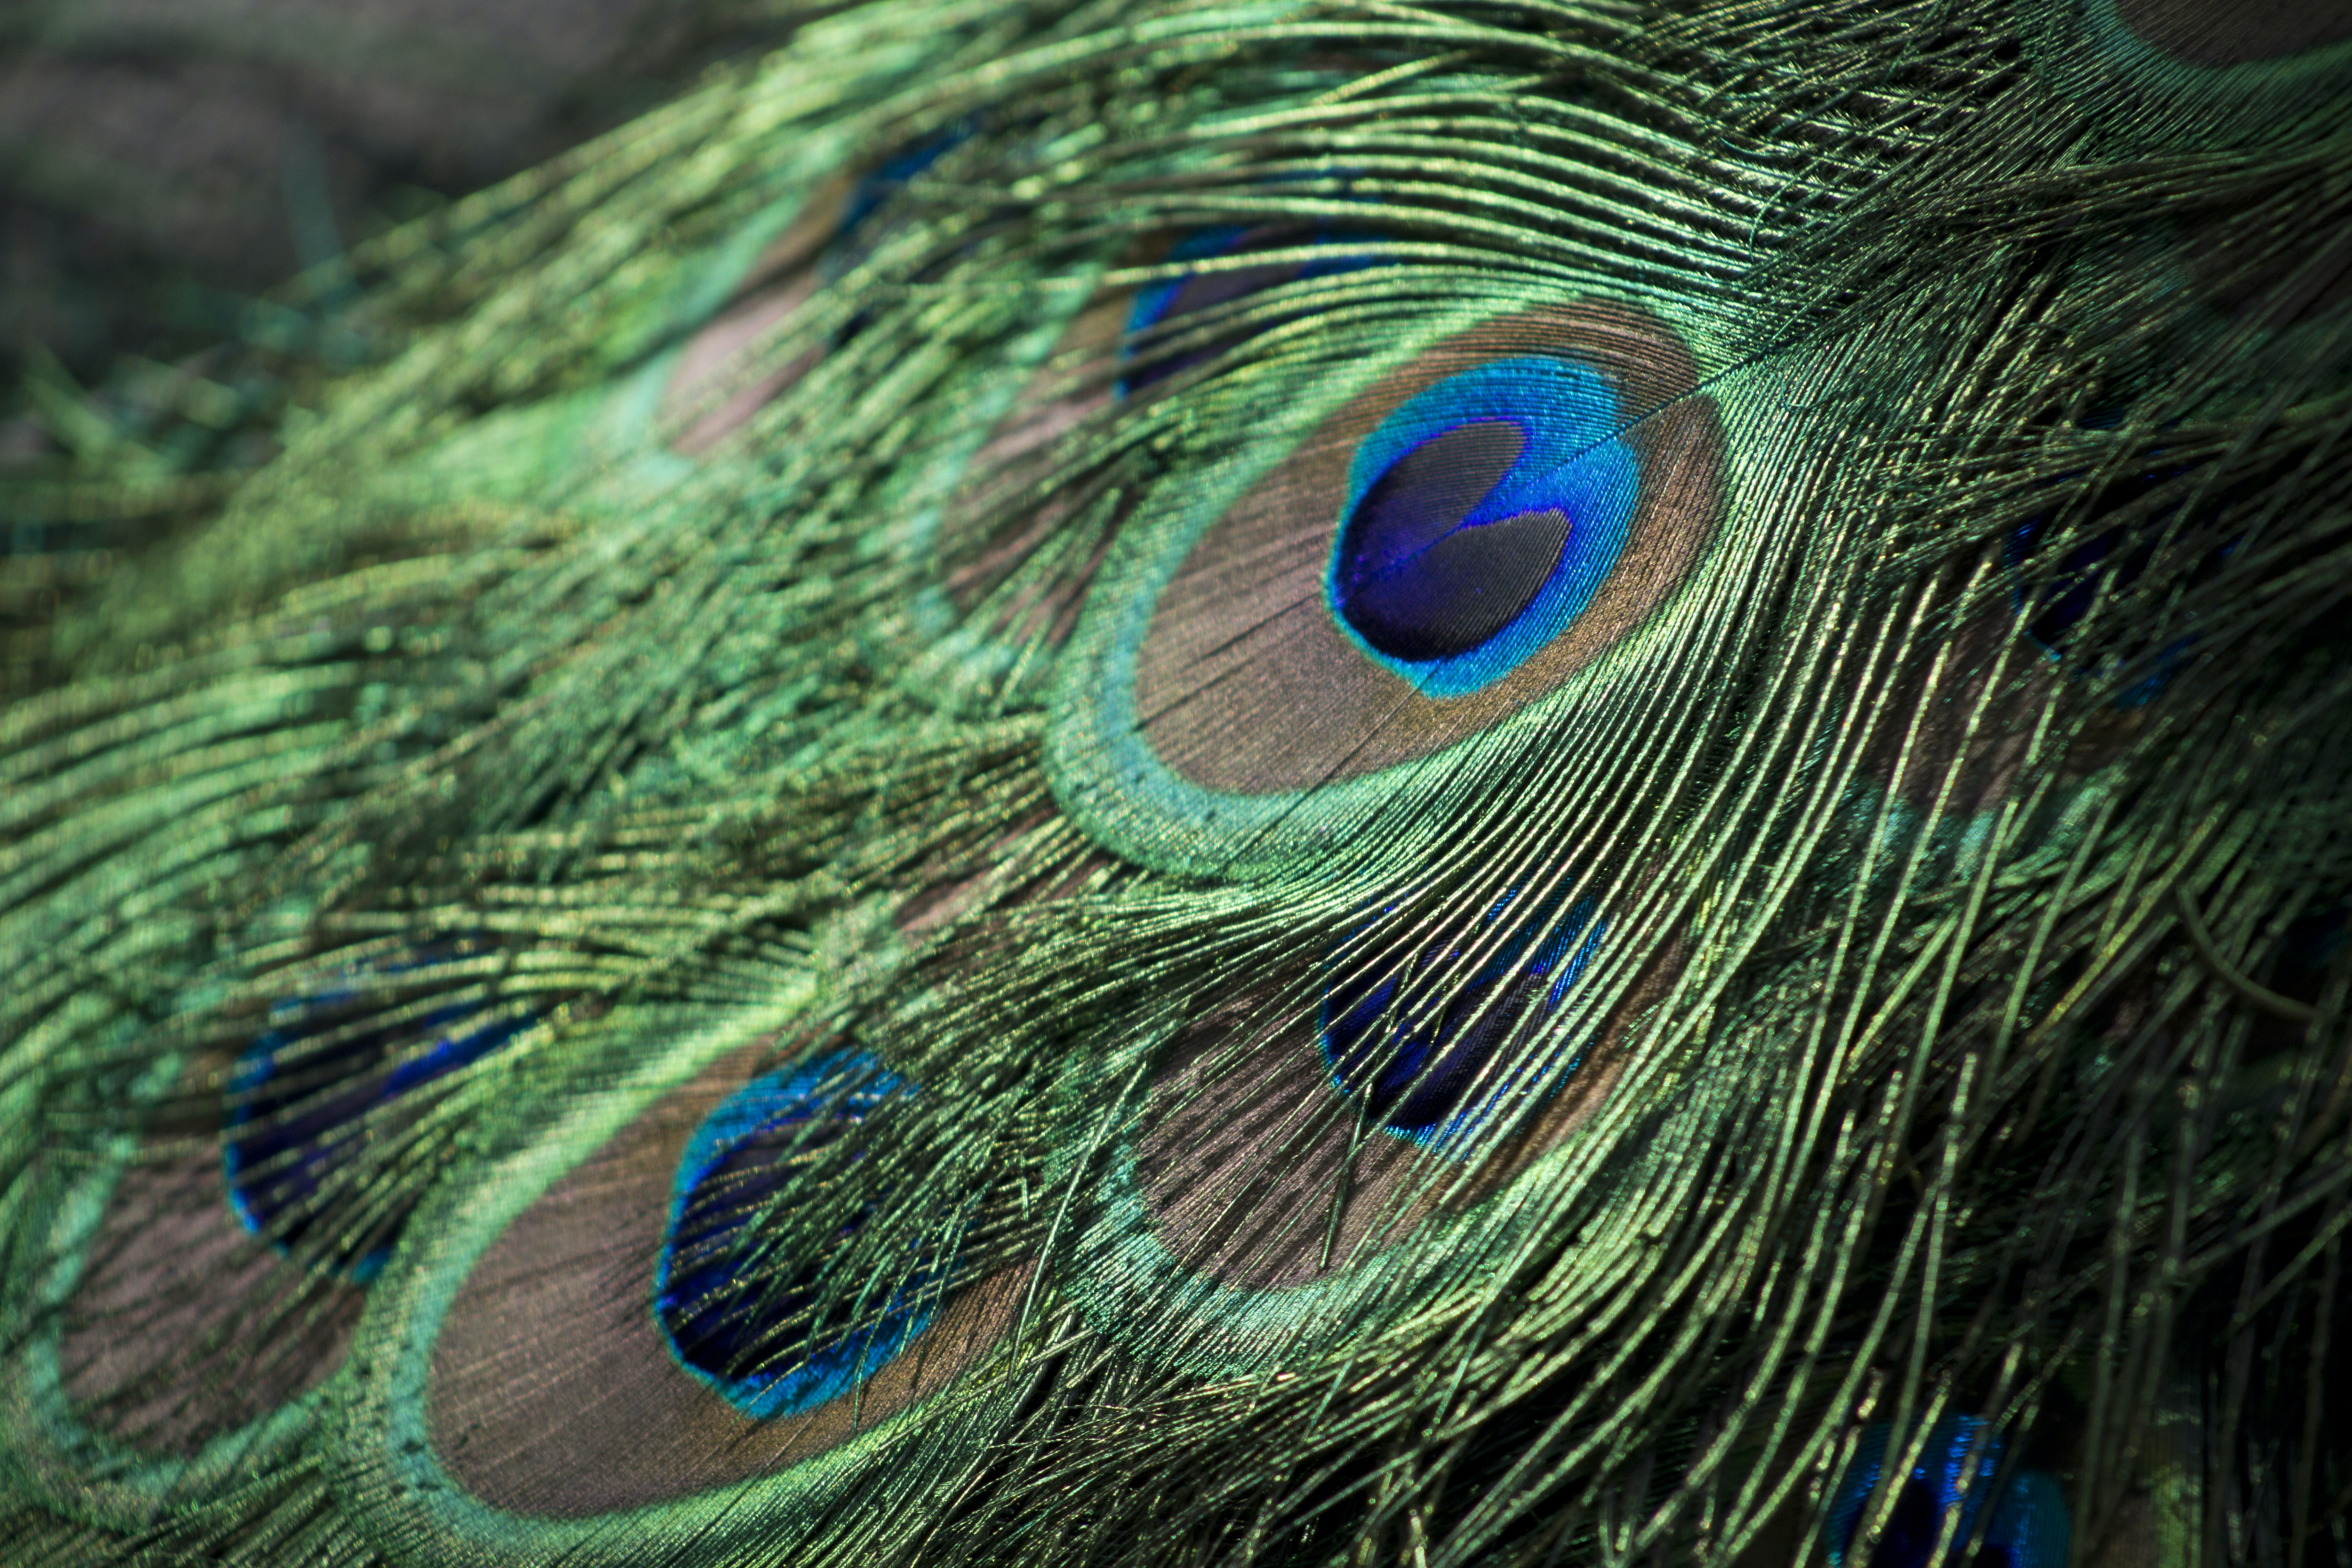 Peacock, feather, pattern and background HD photo by Caleb ...